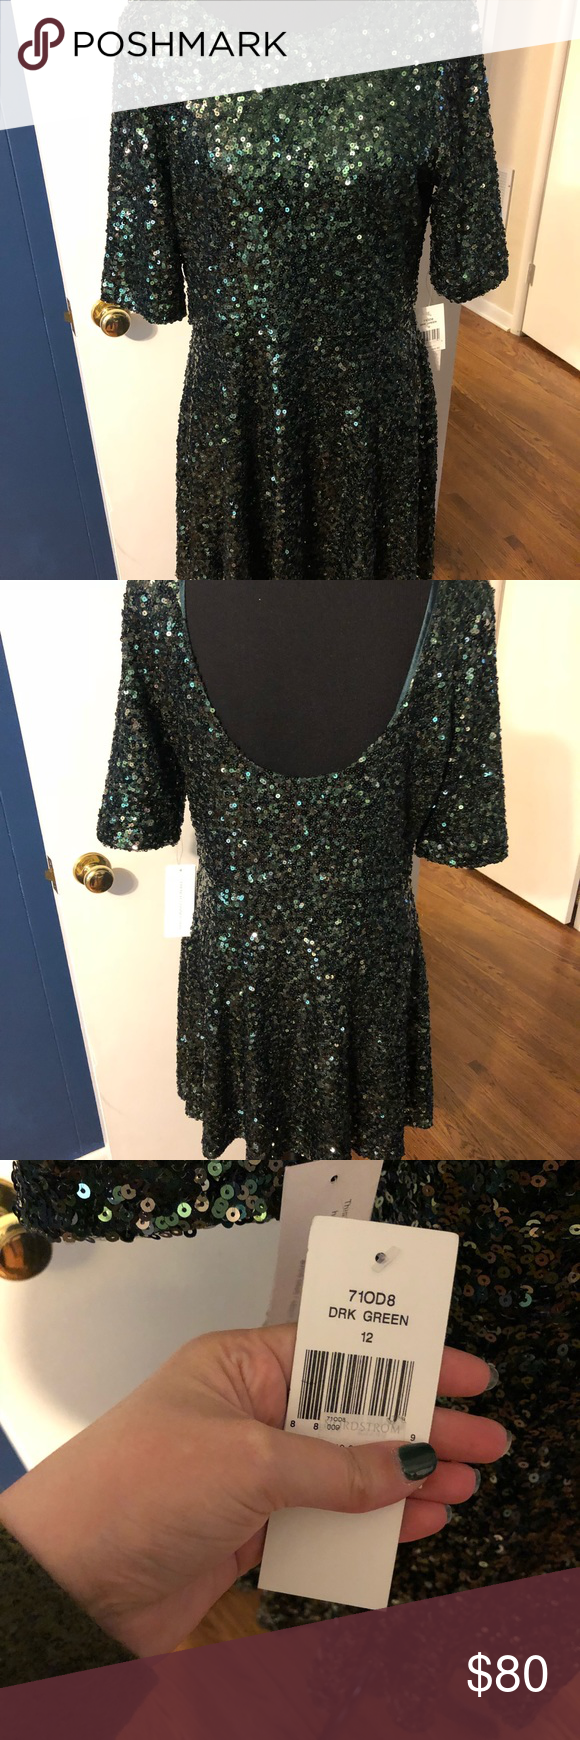 cf33f9b1 NWT - French Connection Emerald Green Sequin Dress NWT - French Connection  Emerald Green Swing Dress Flattering fit, all sequins fully intact with no  snags.